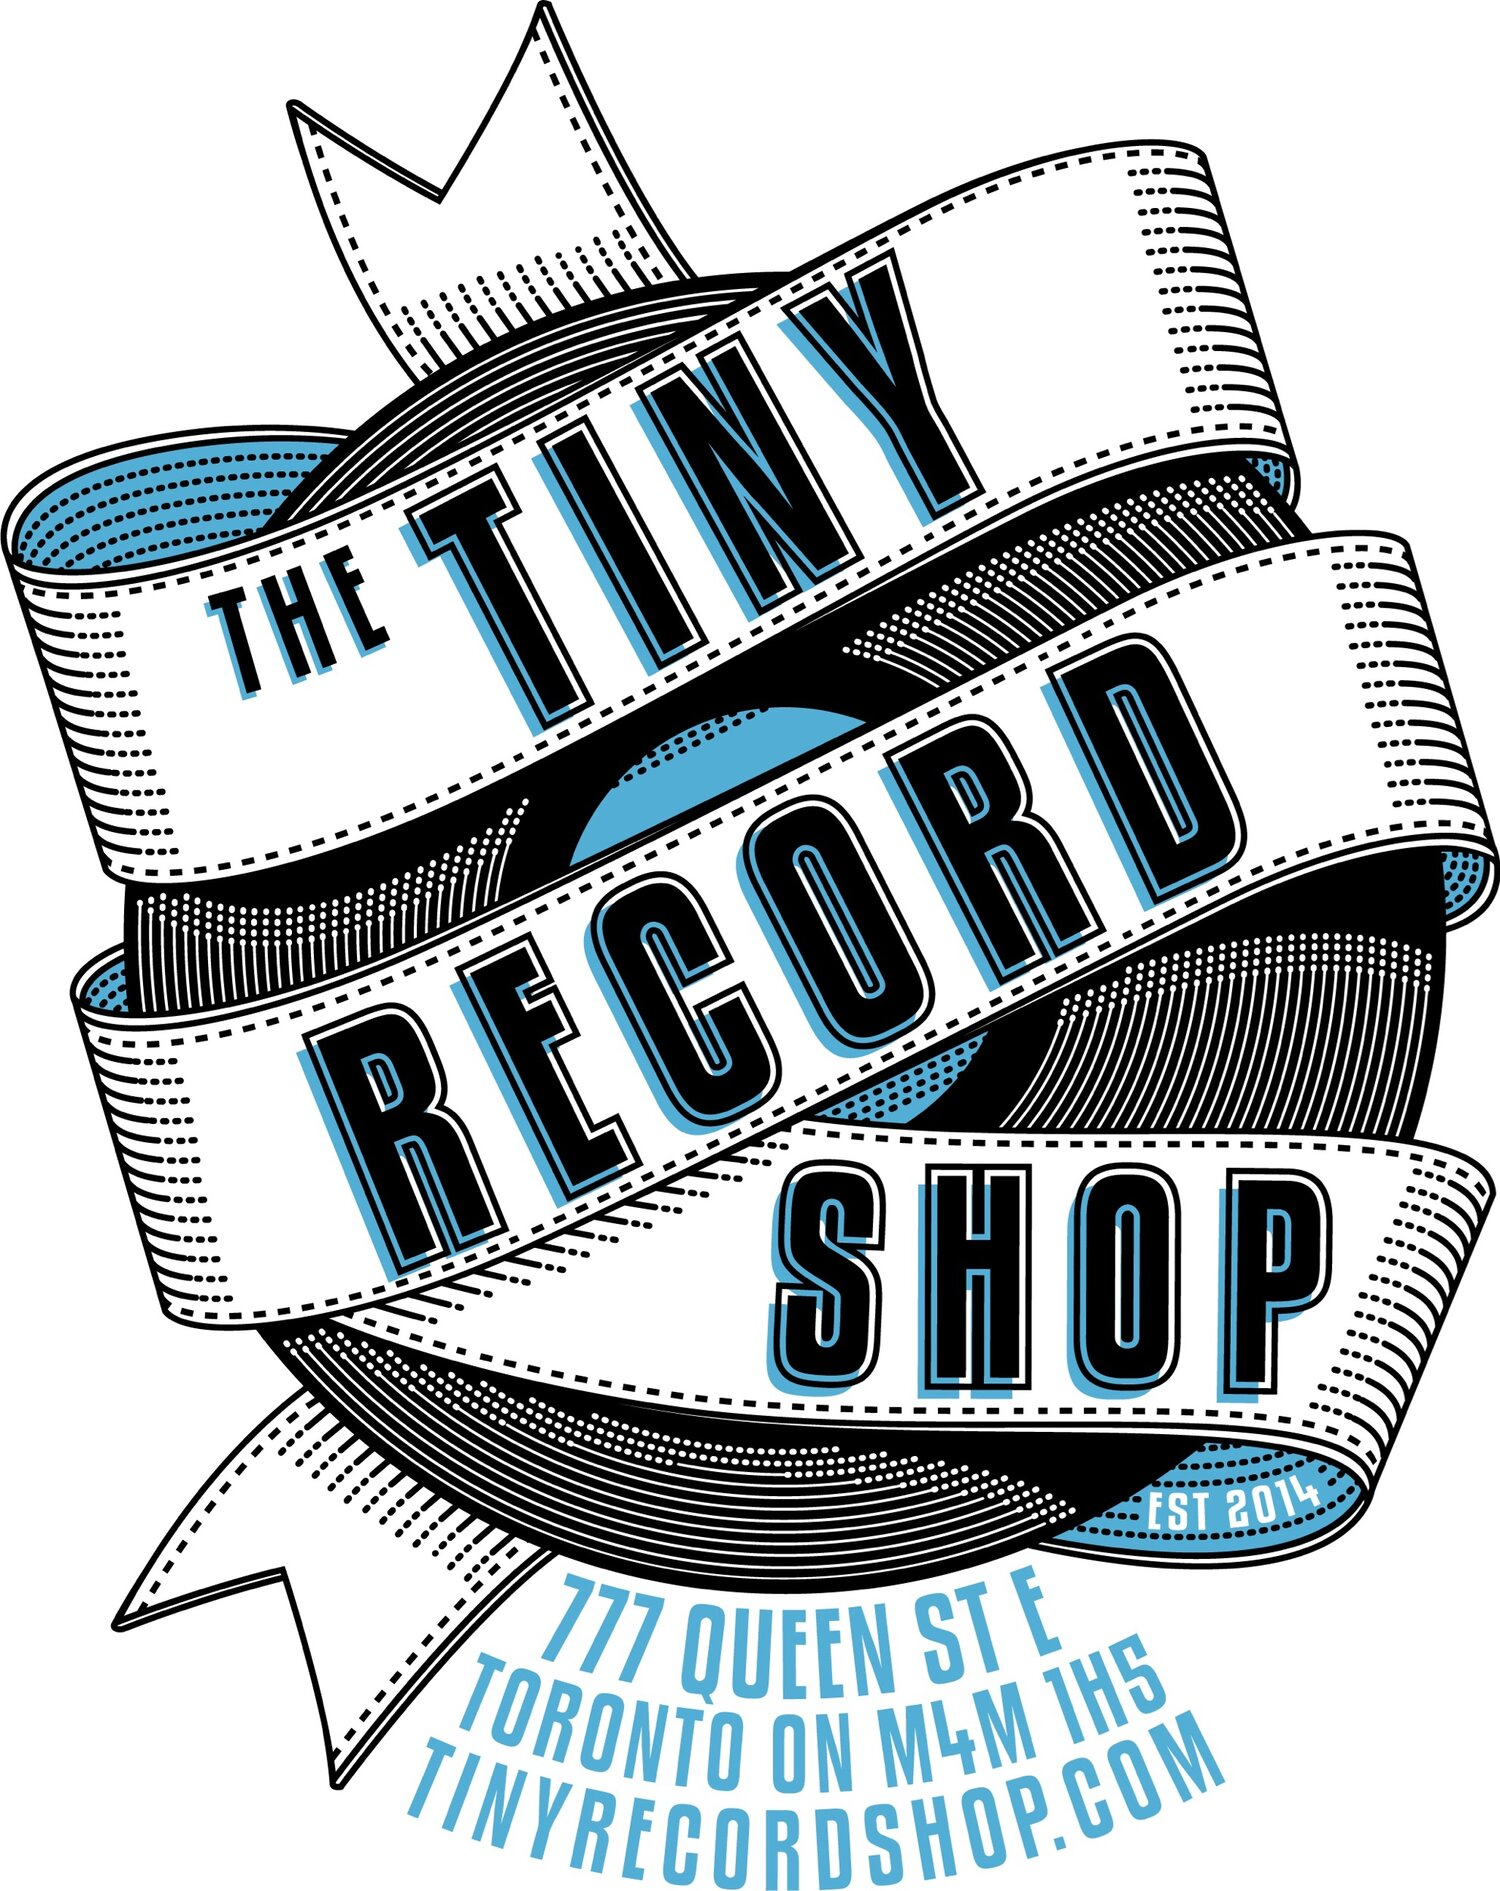 Tiny Record Shop | Not Your Average Record Shop